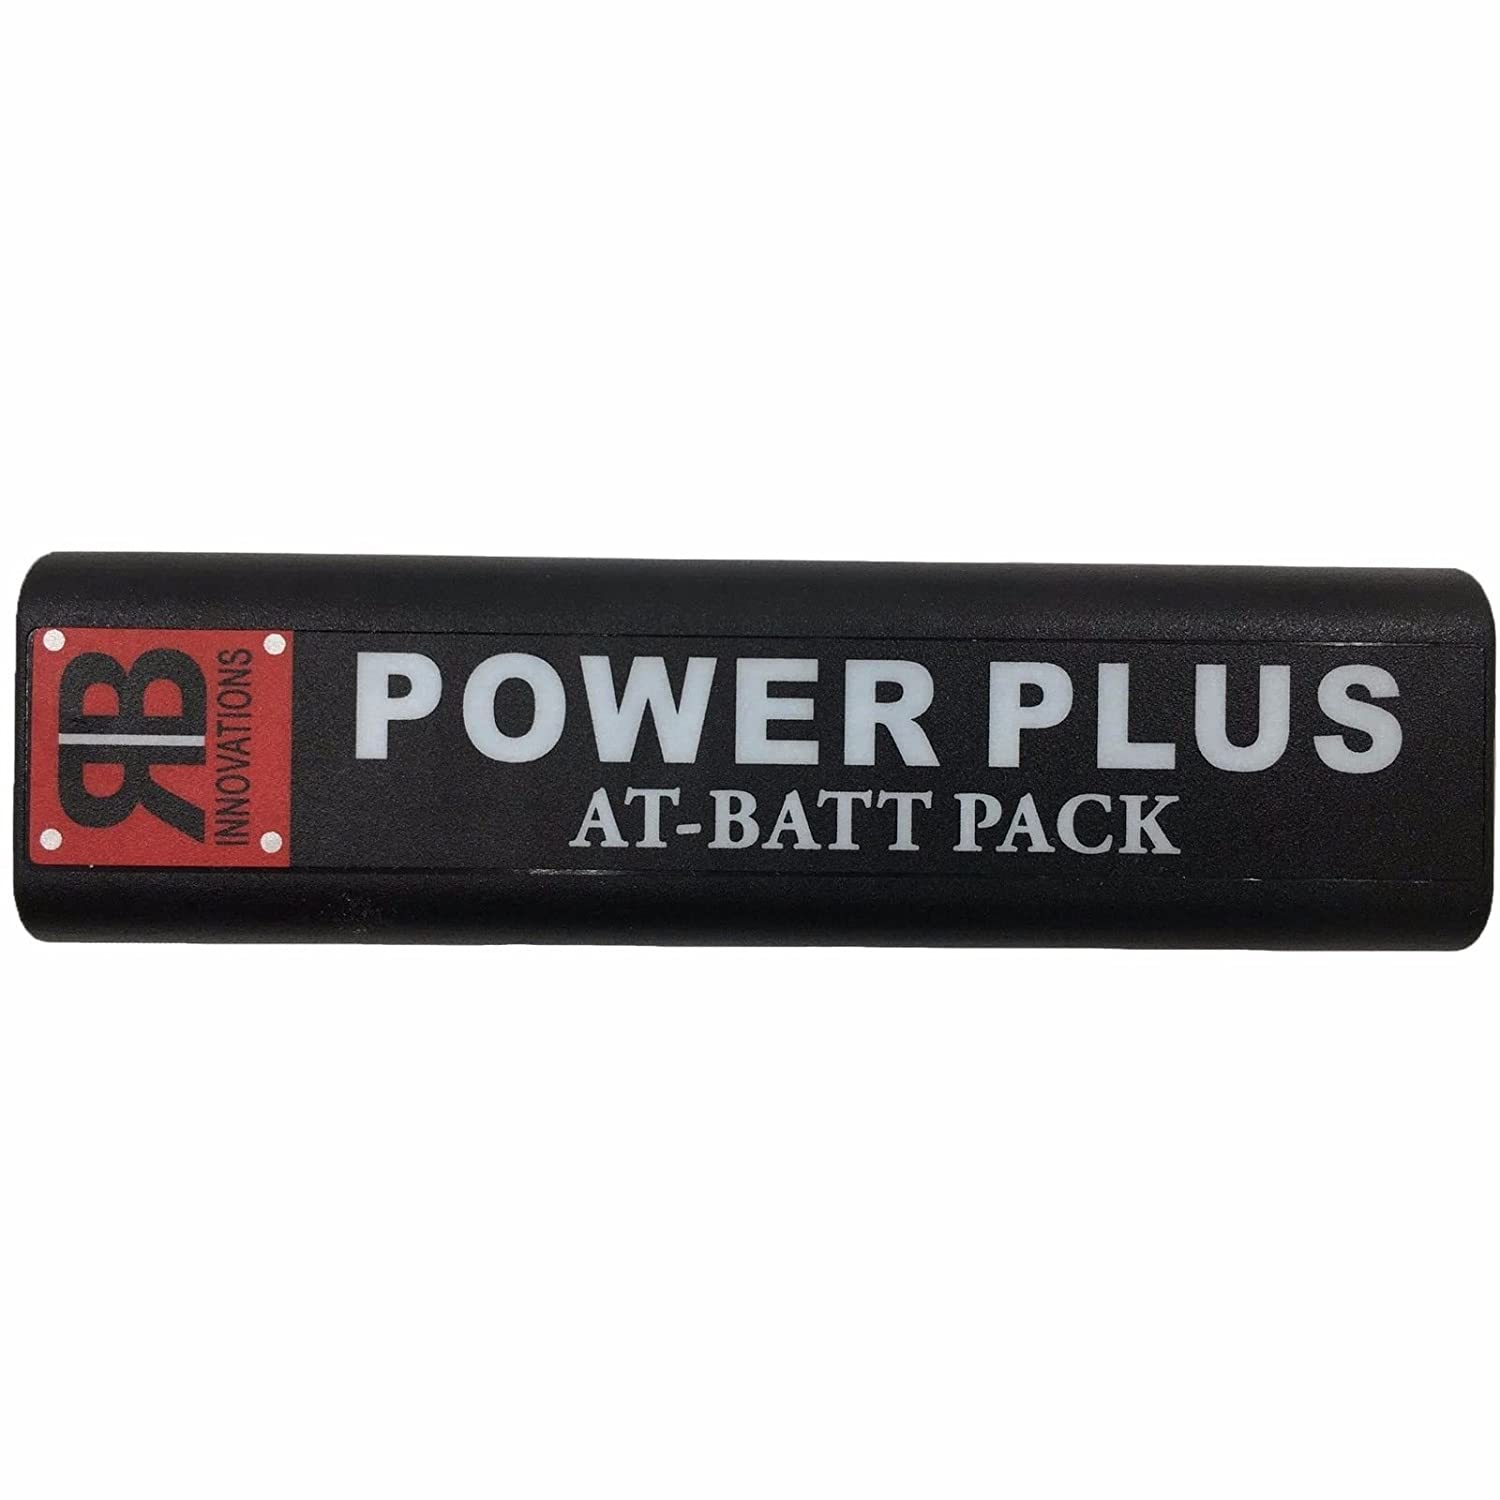 Amazon.com: Rnb Power Plus at-batt Pack batería para Garrett ...